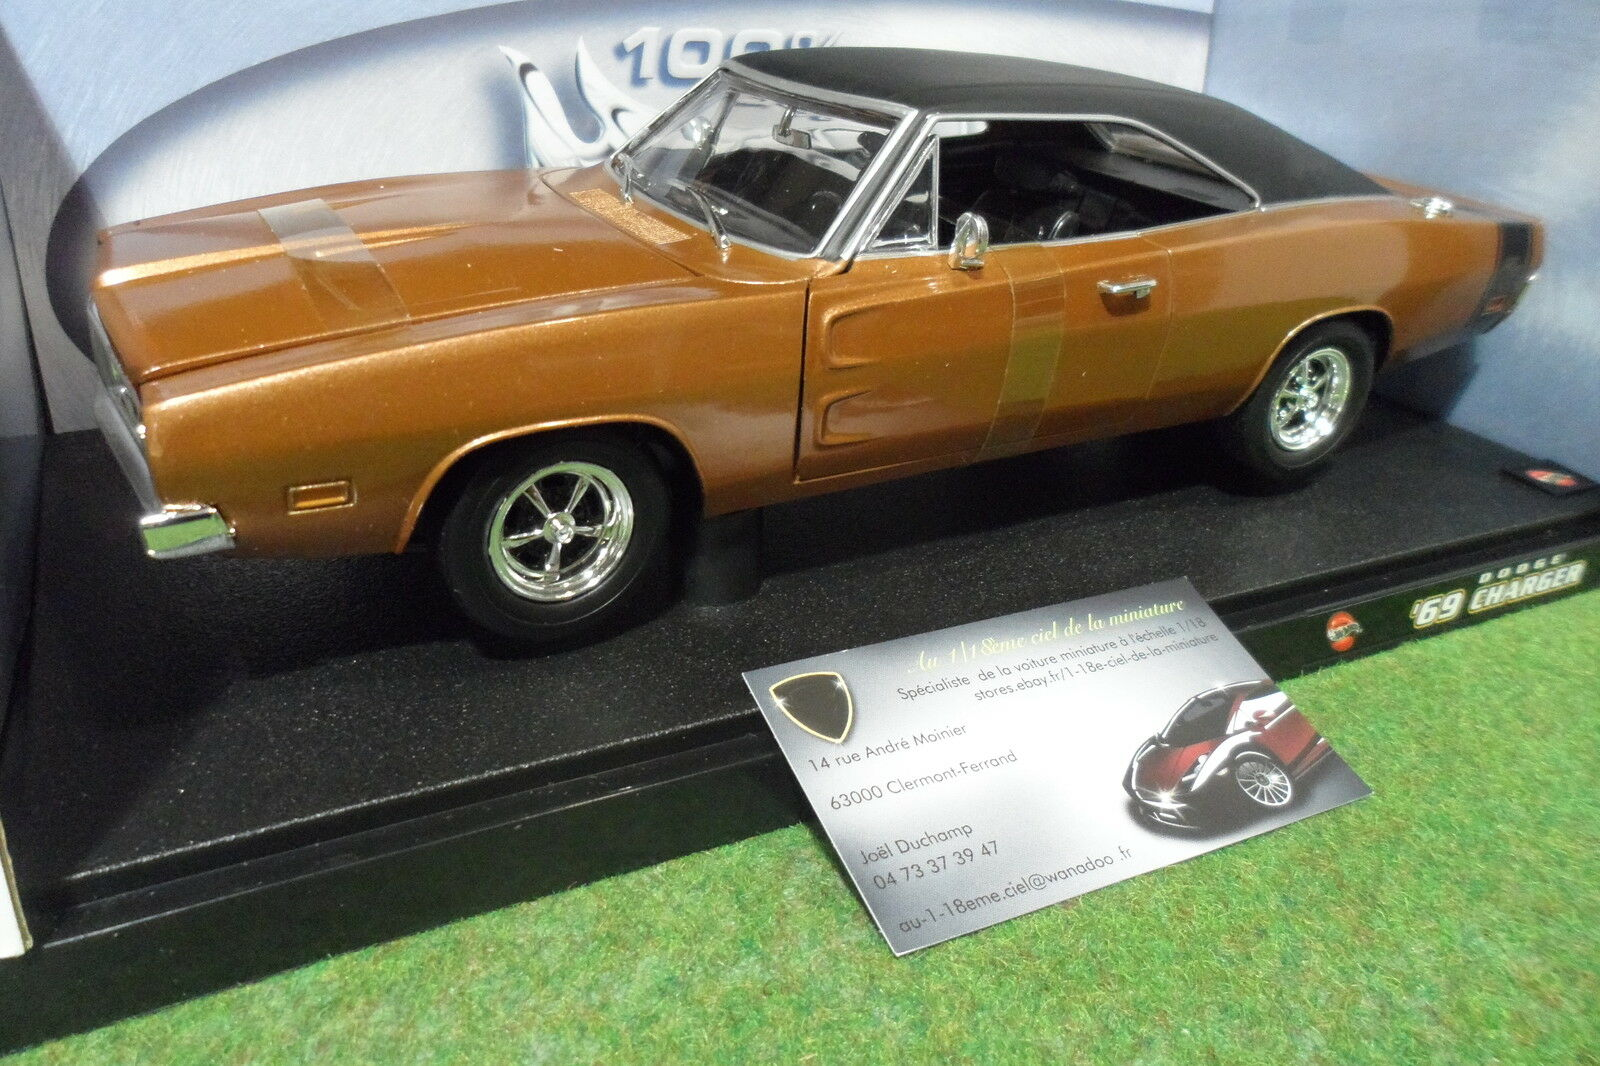 DODGE CHARGER R T 1969 Marronee 1 18 HOT WHEELS 50423 voiture miniature collection